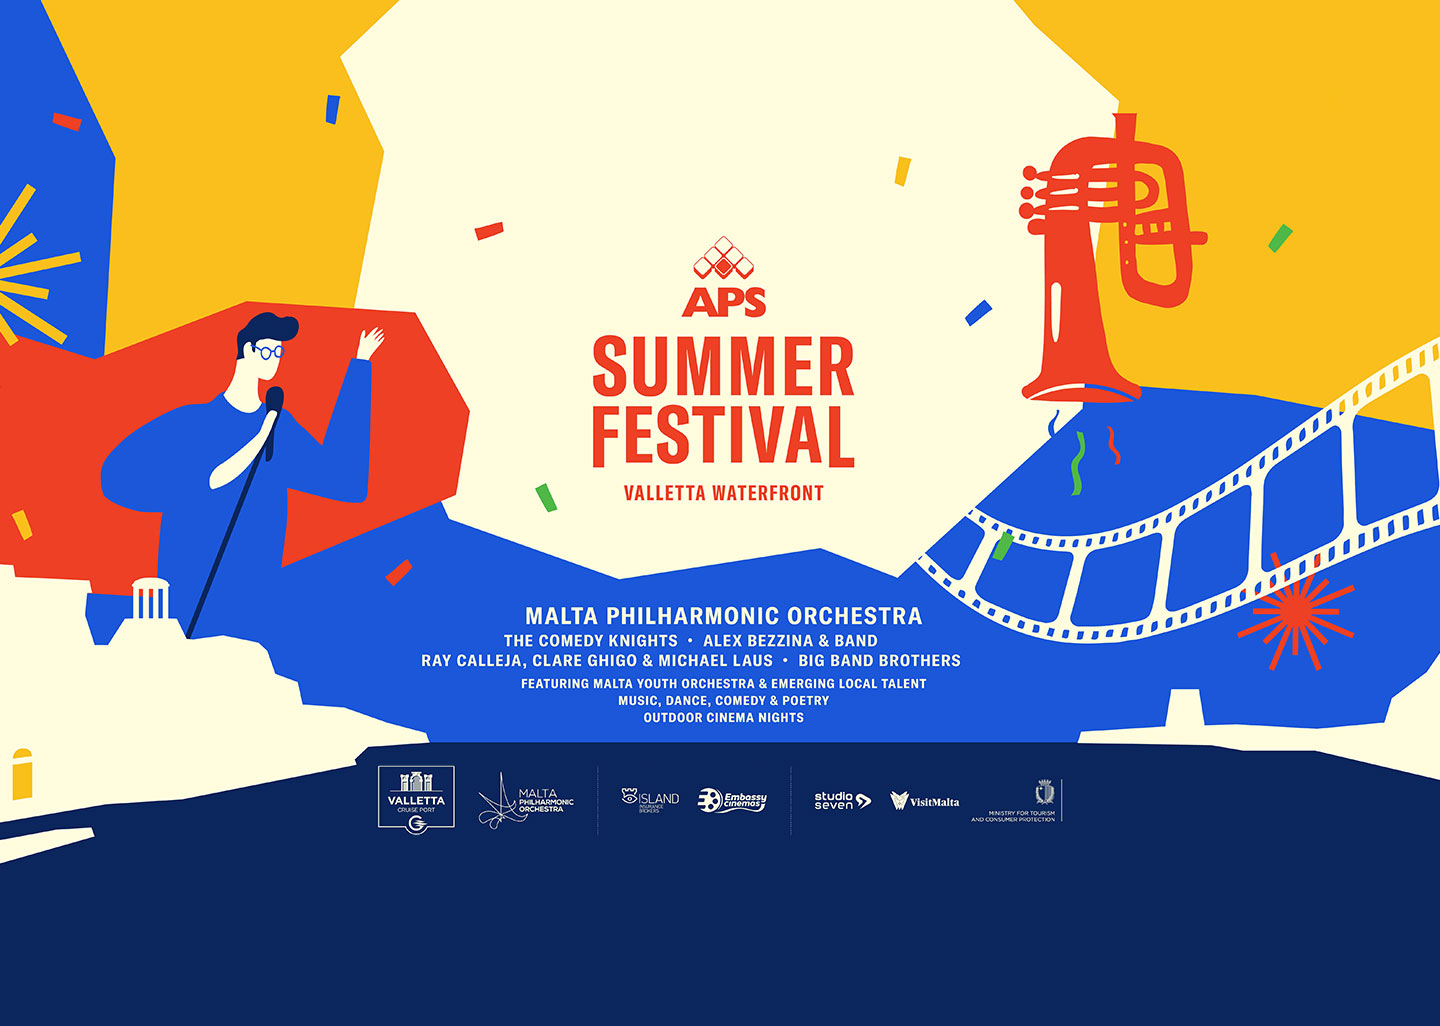 APS Summer Festival extended to mid-August